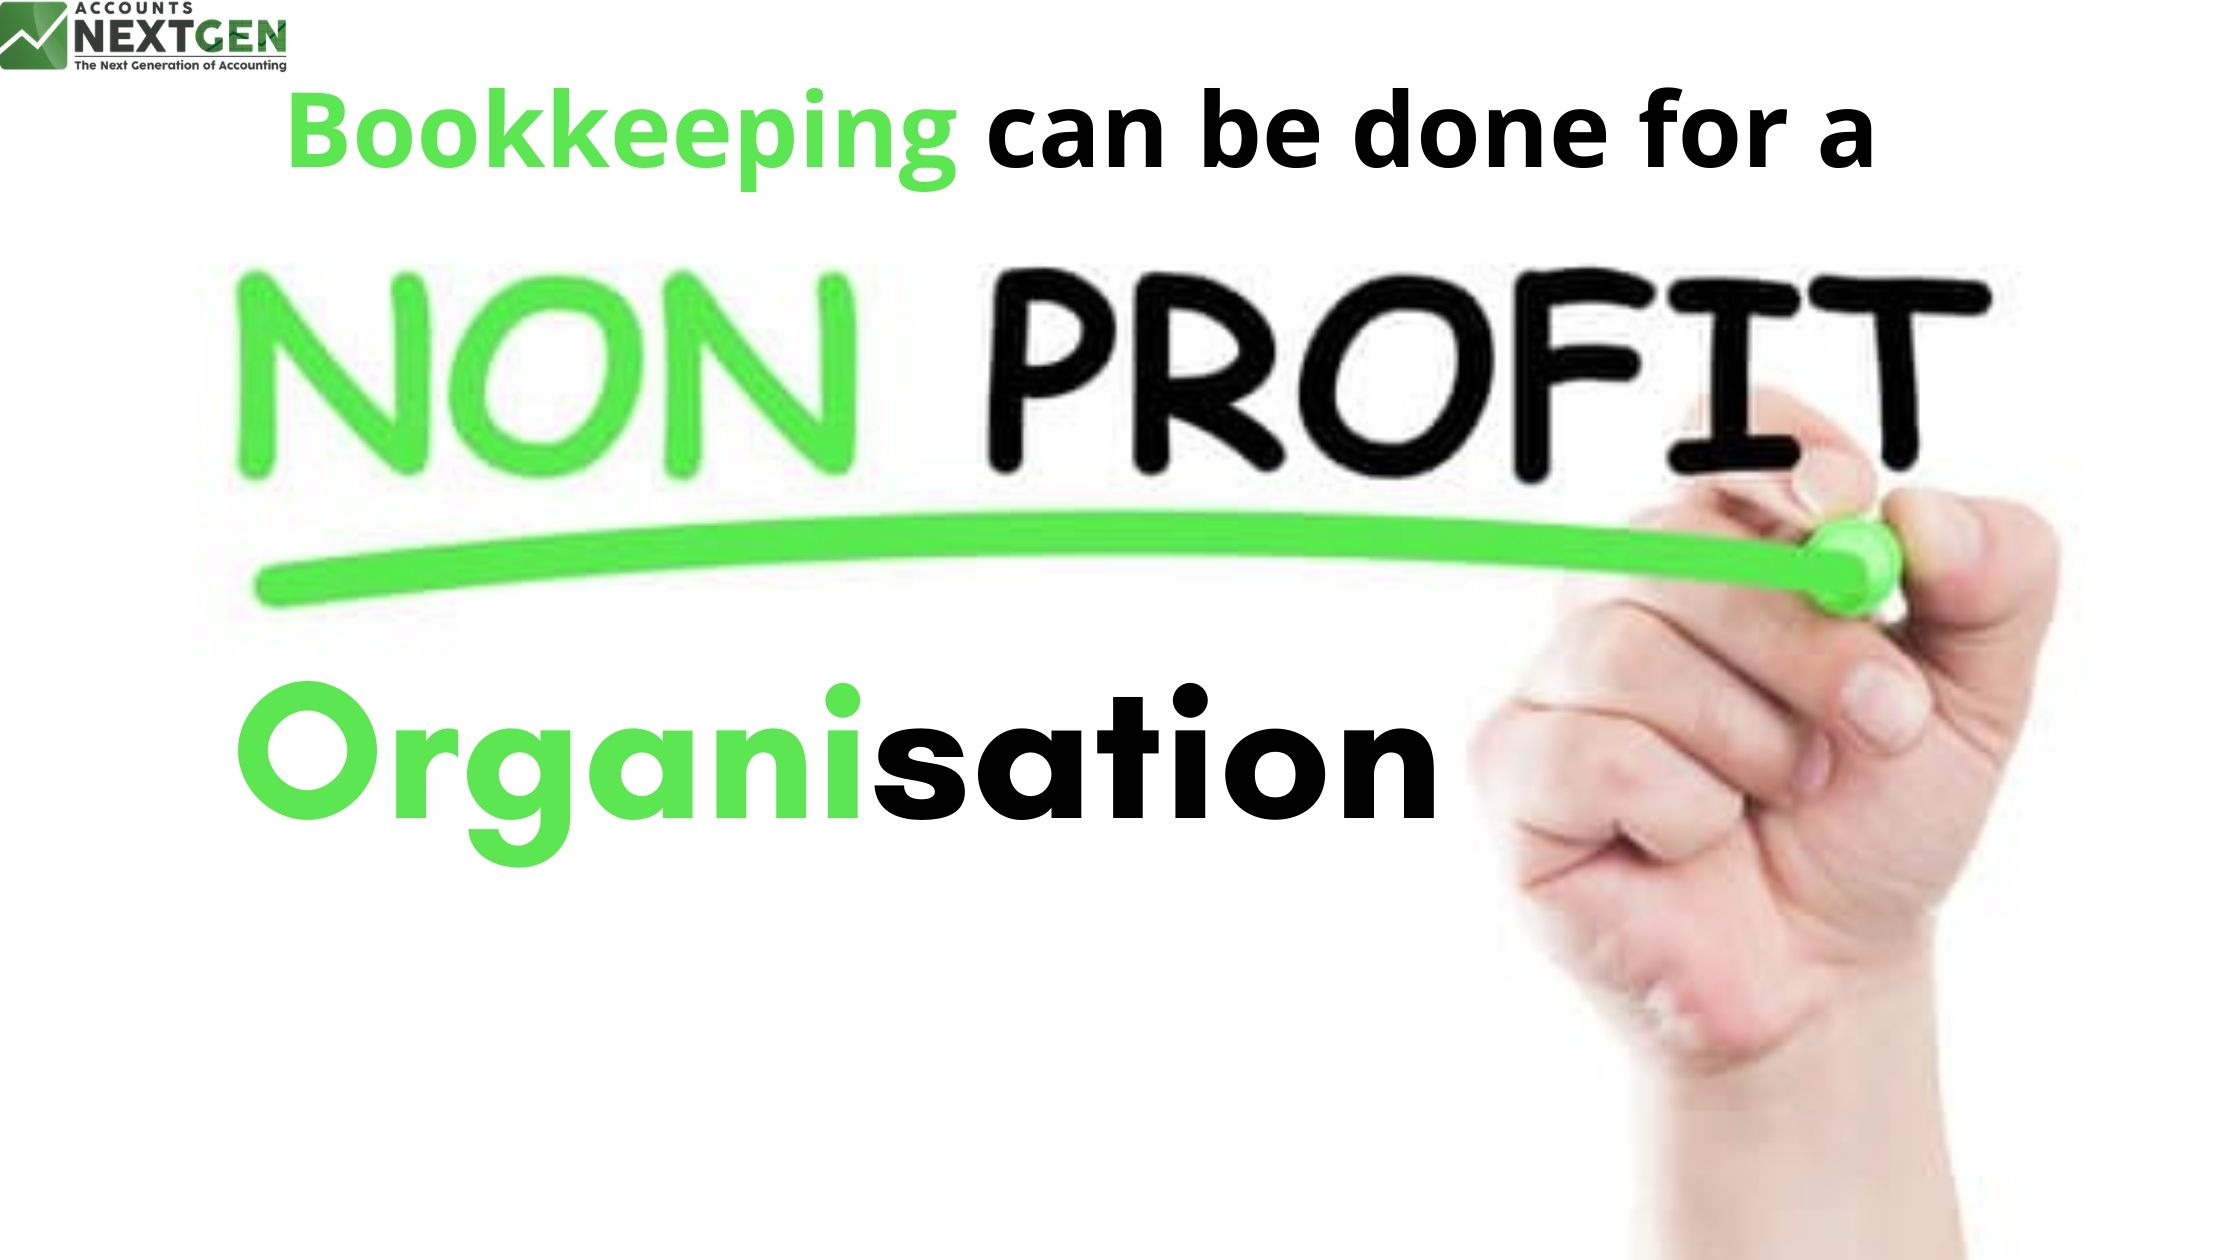 How Bookkeeping can be done for a Non-Profit Organisation?